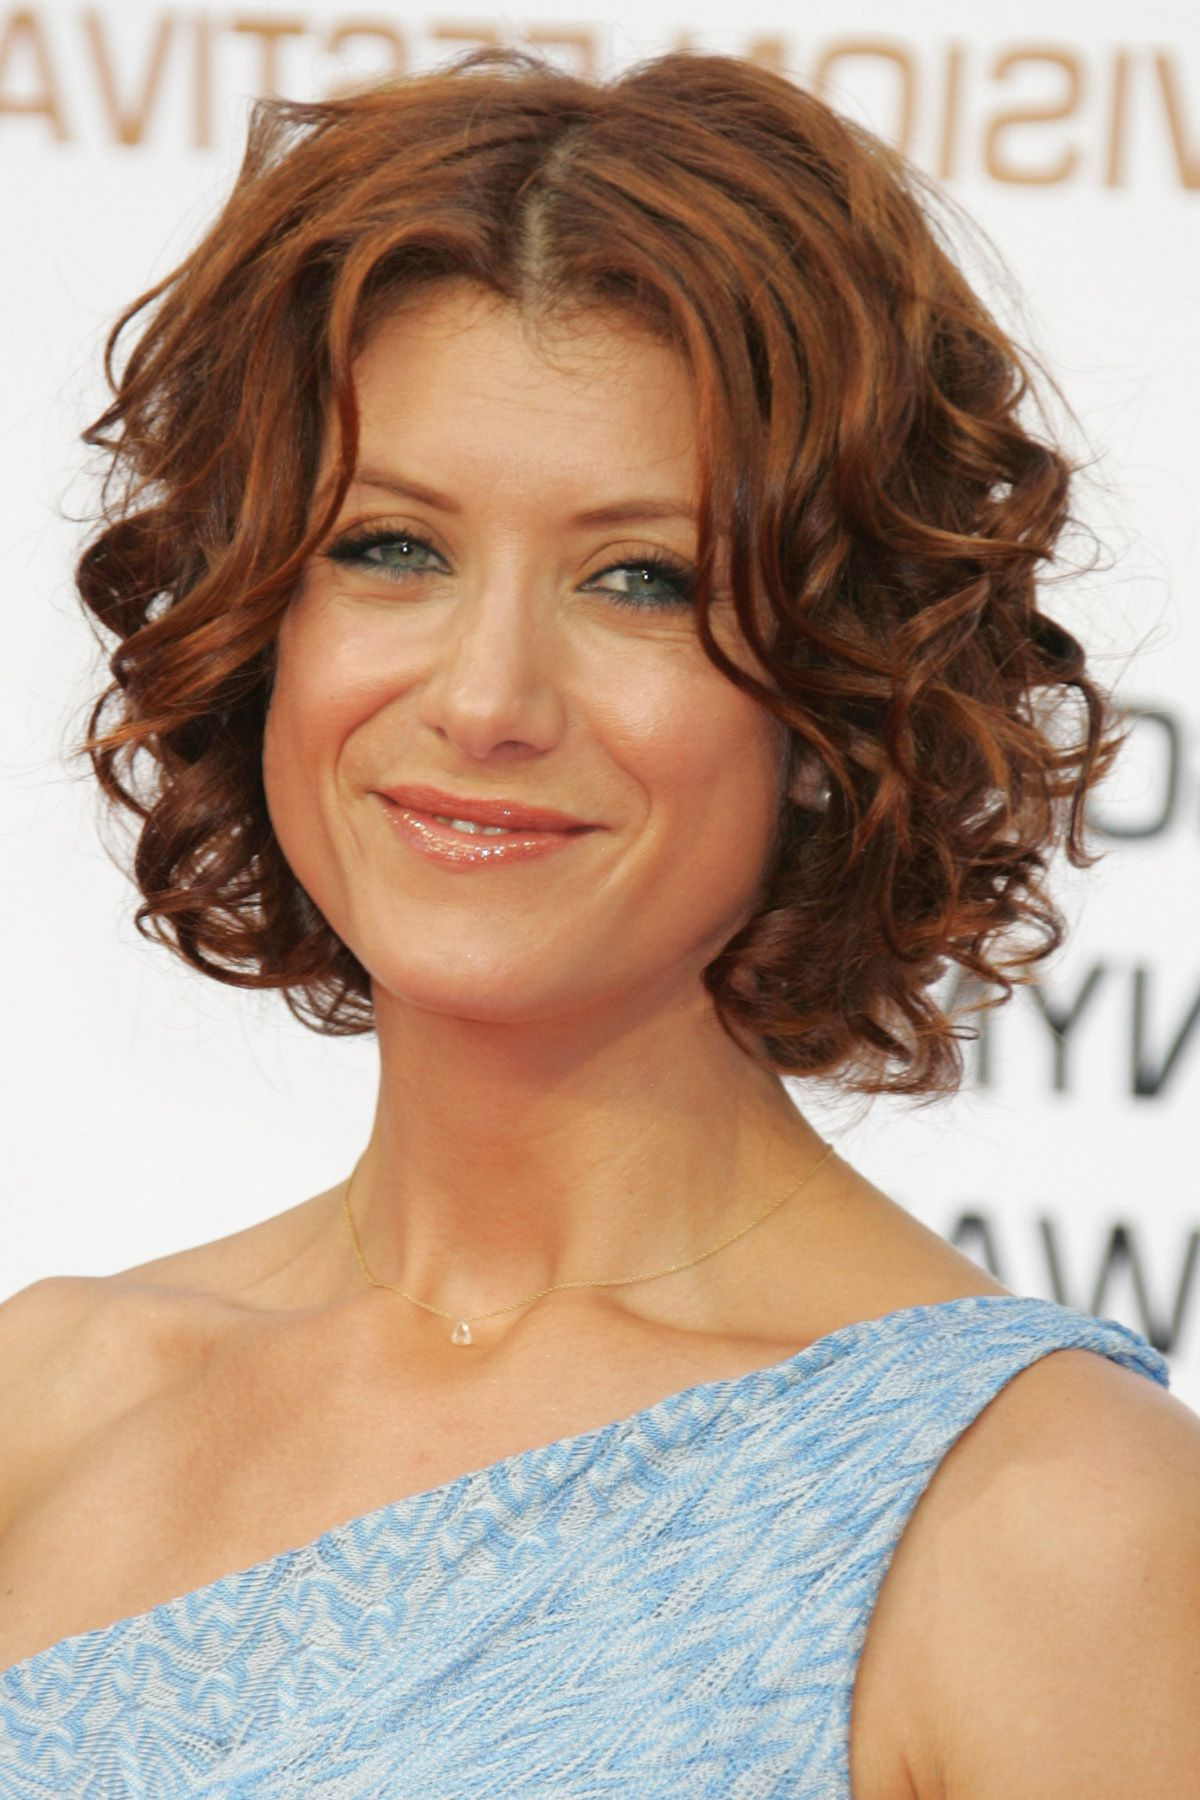 14 Best Short Curly Hairstyles For Women – Short Haircuts For Curly Hair Within Women Short Hairstyles For Curly Hair (View 1 of 25)